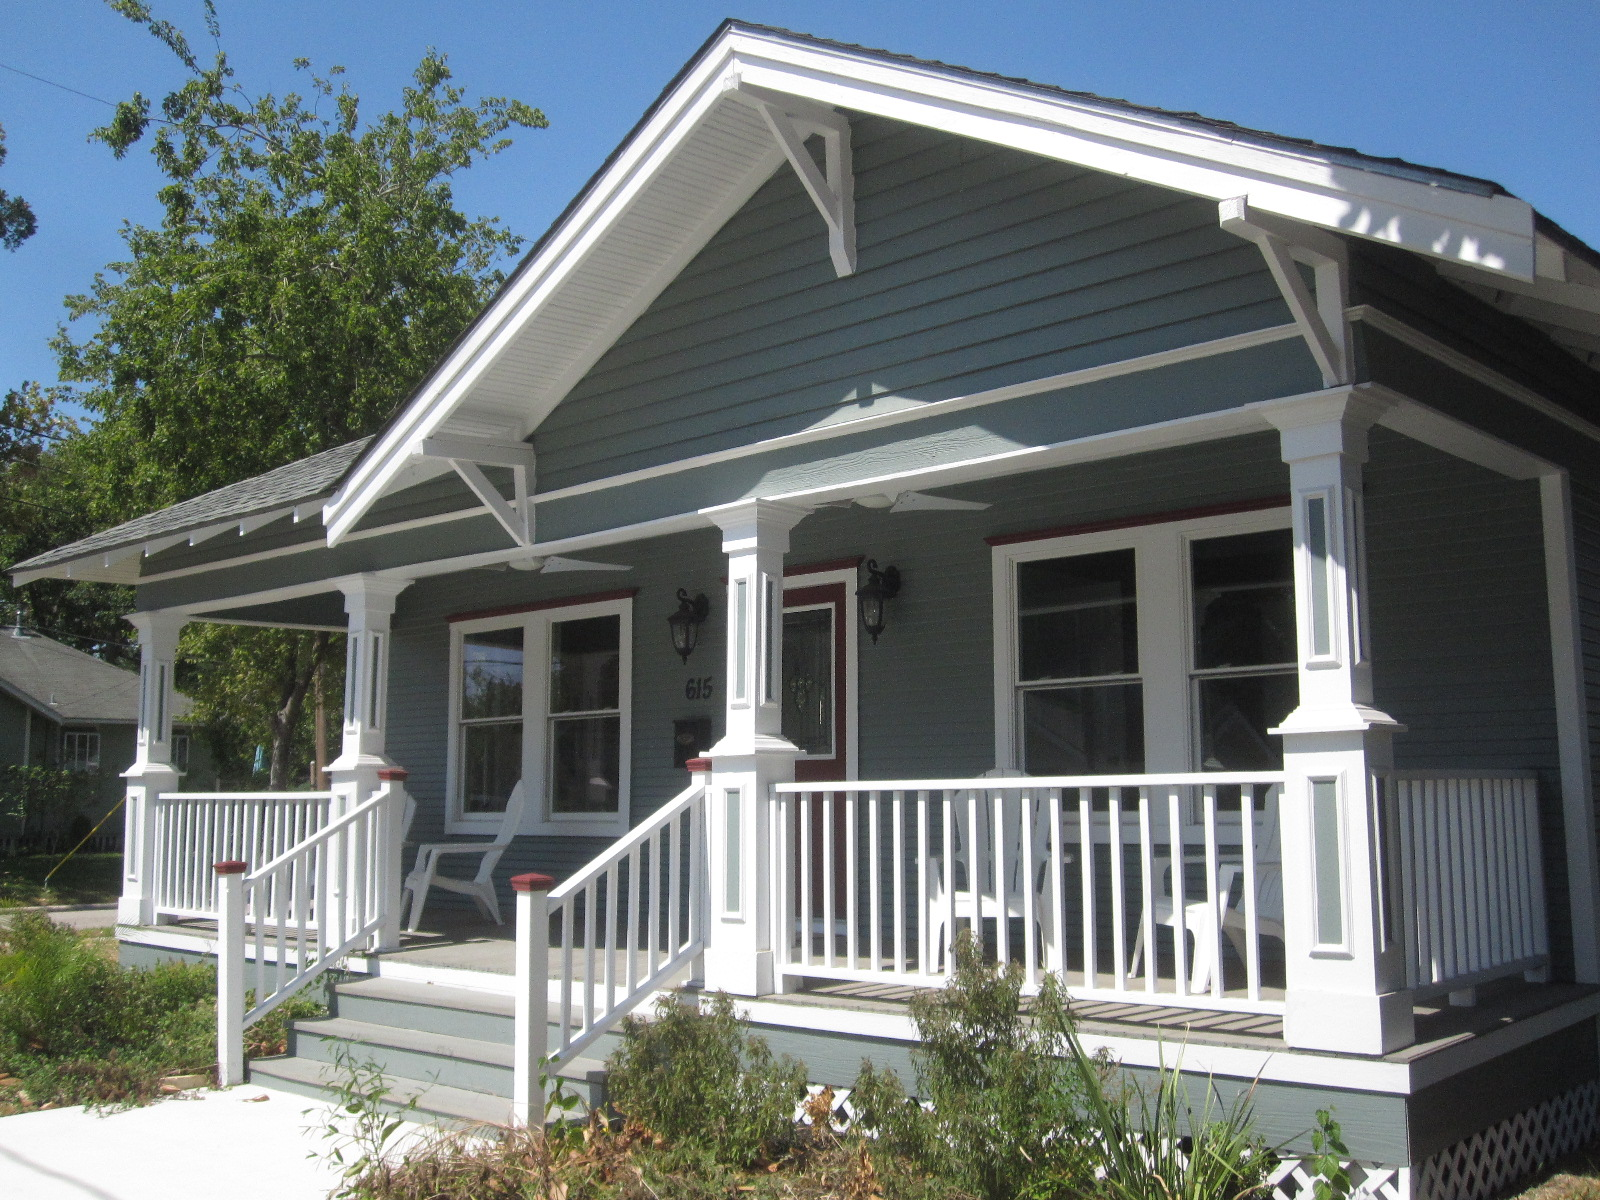 The other houston cozy bungalow porches for House porch design